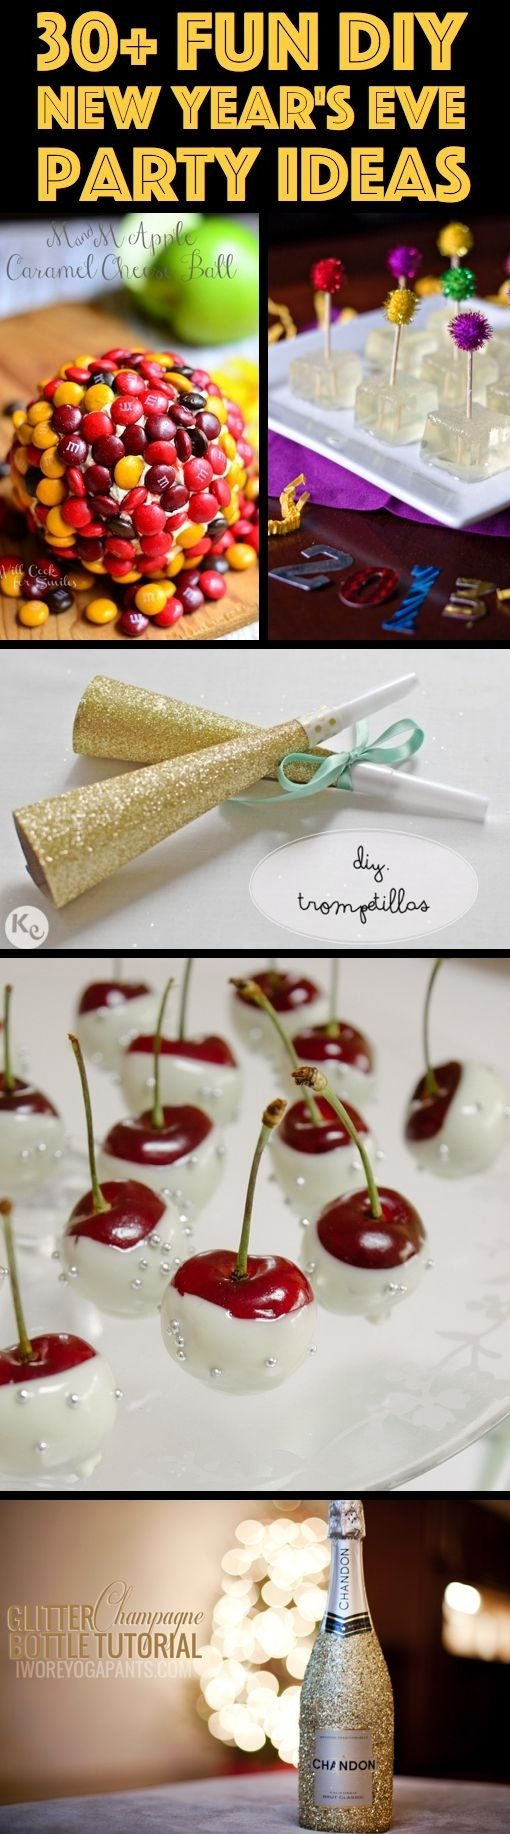 10 Ideal New Years Eve Desserts Party Ideas 40 best new years eve party ideas images on pinterest birthdays 2020